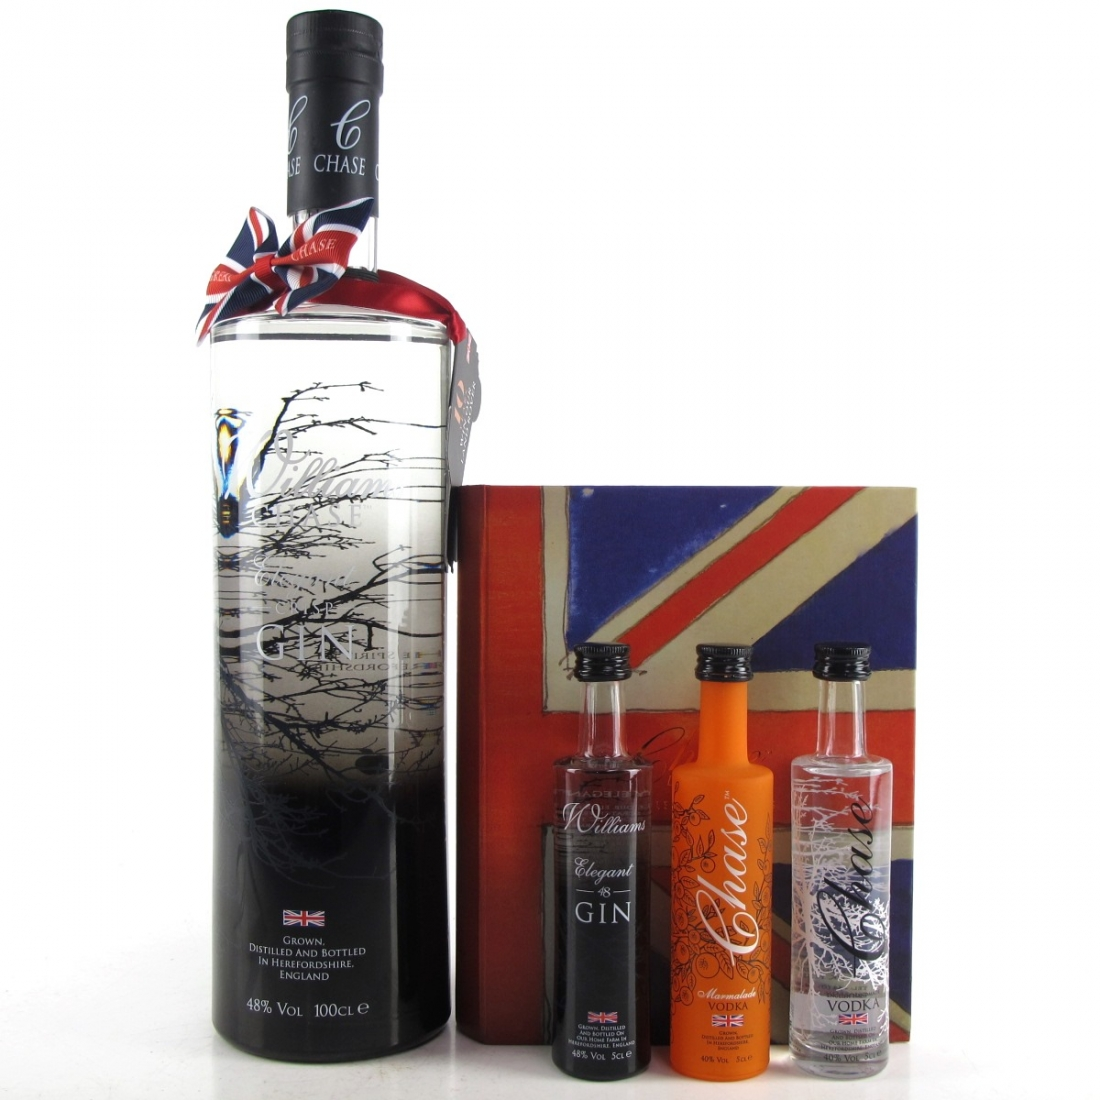 Williams Chase Gin 1 Litre / Including Gift Set 3 x 5cl